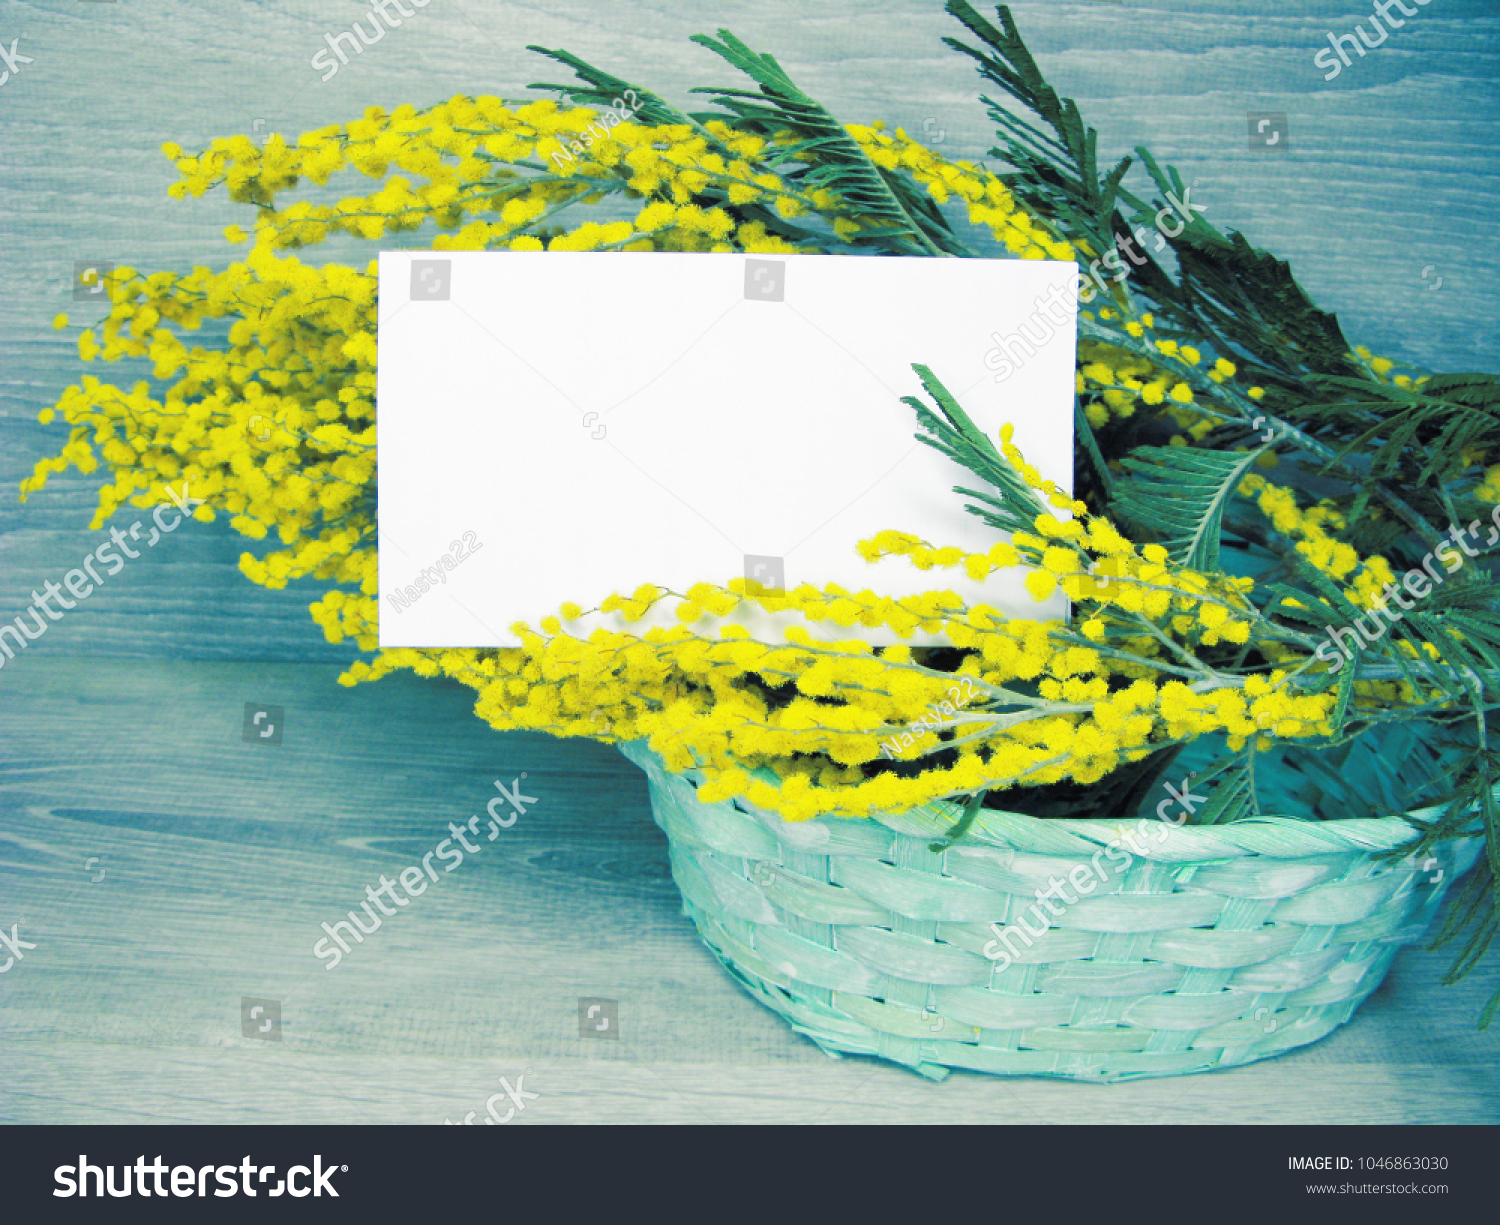 Mimosa yellow flowers bush floral spring stock photo royalty free mimosa yellow flowers bush floral spring stock photo royalty free 1046863030 shutterstock mightylinksfo